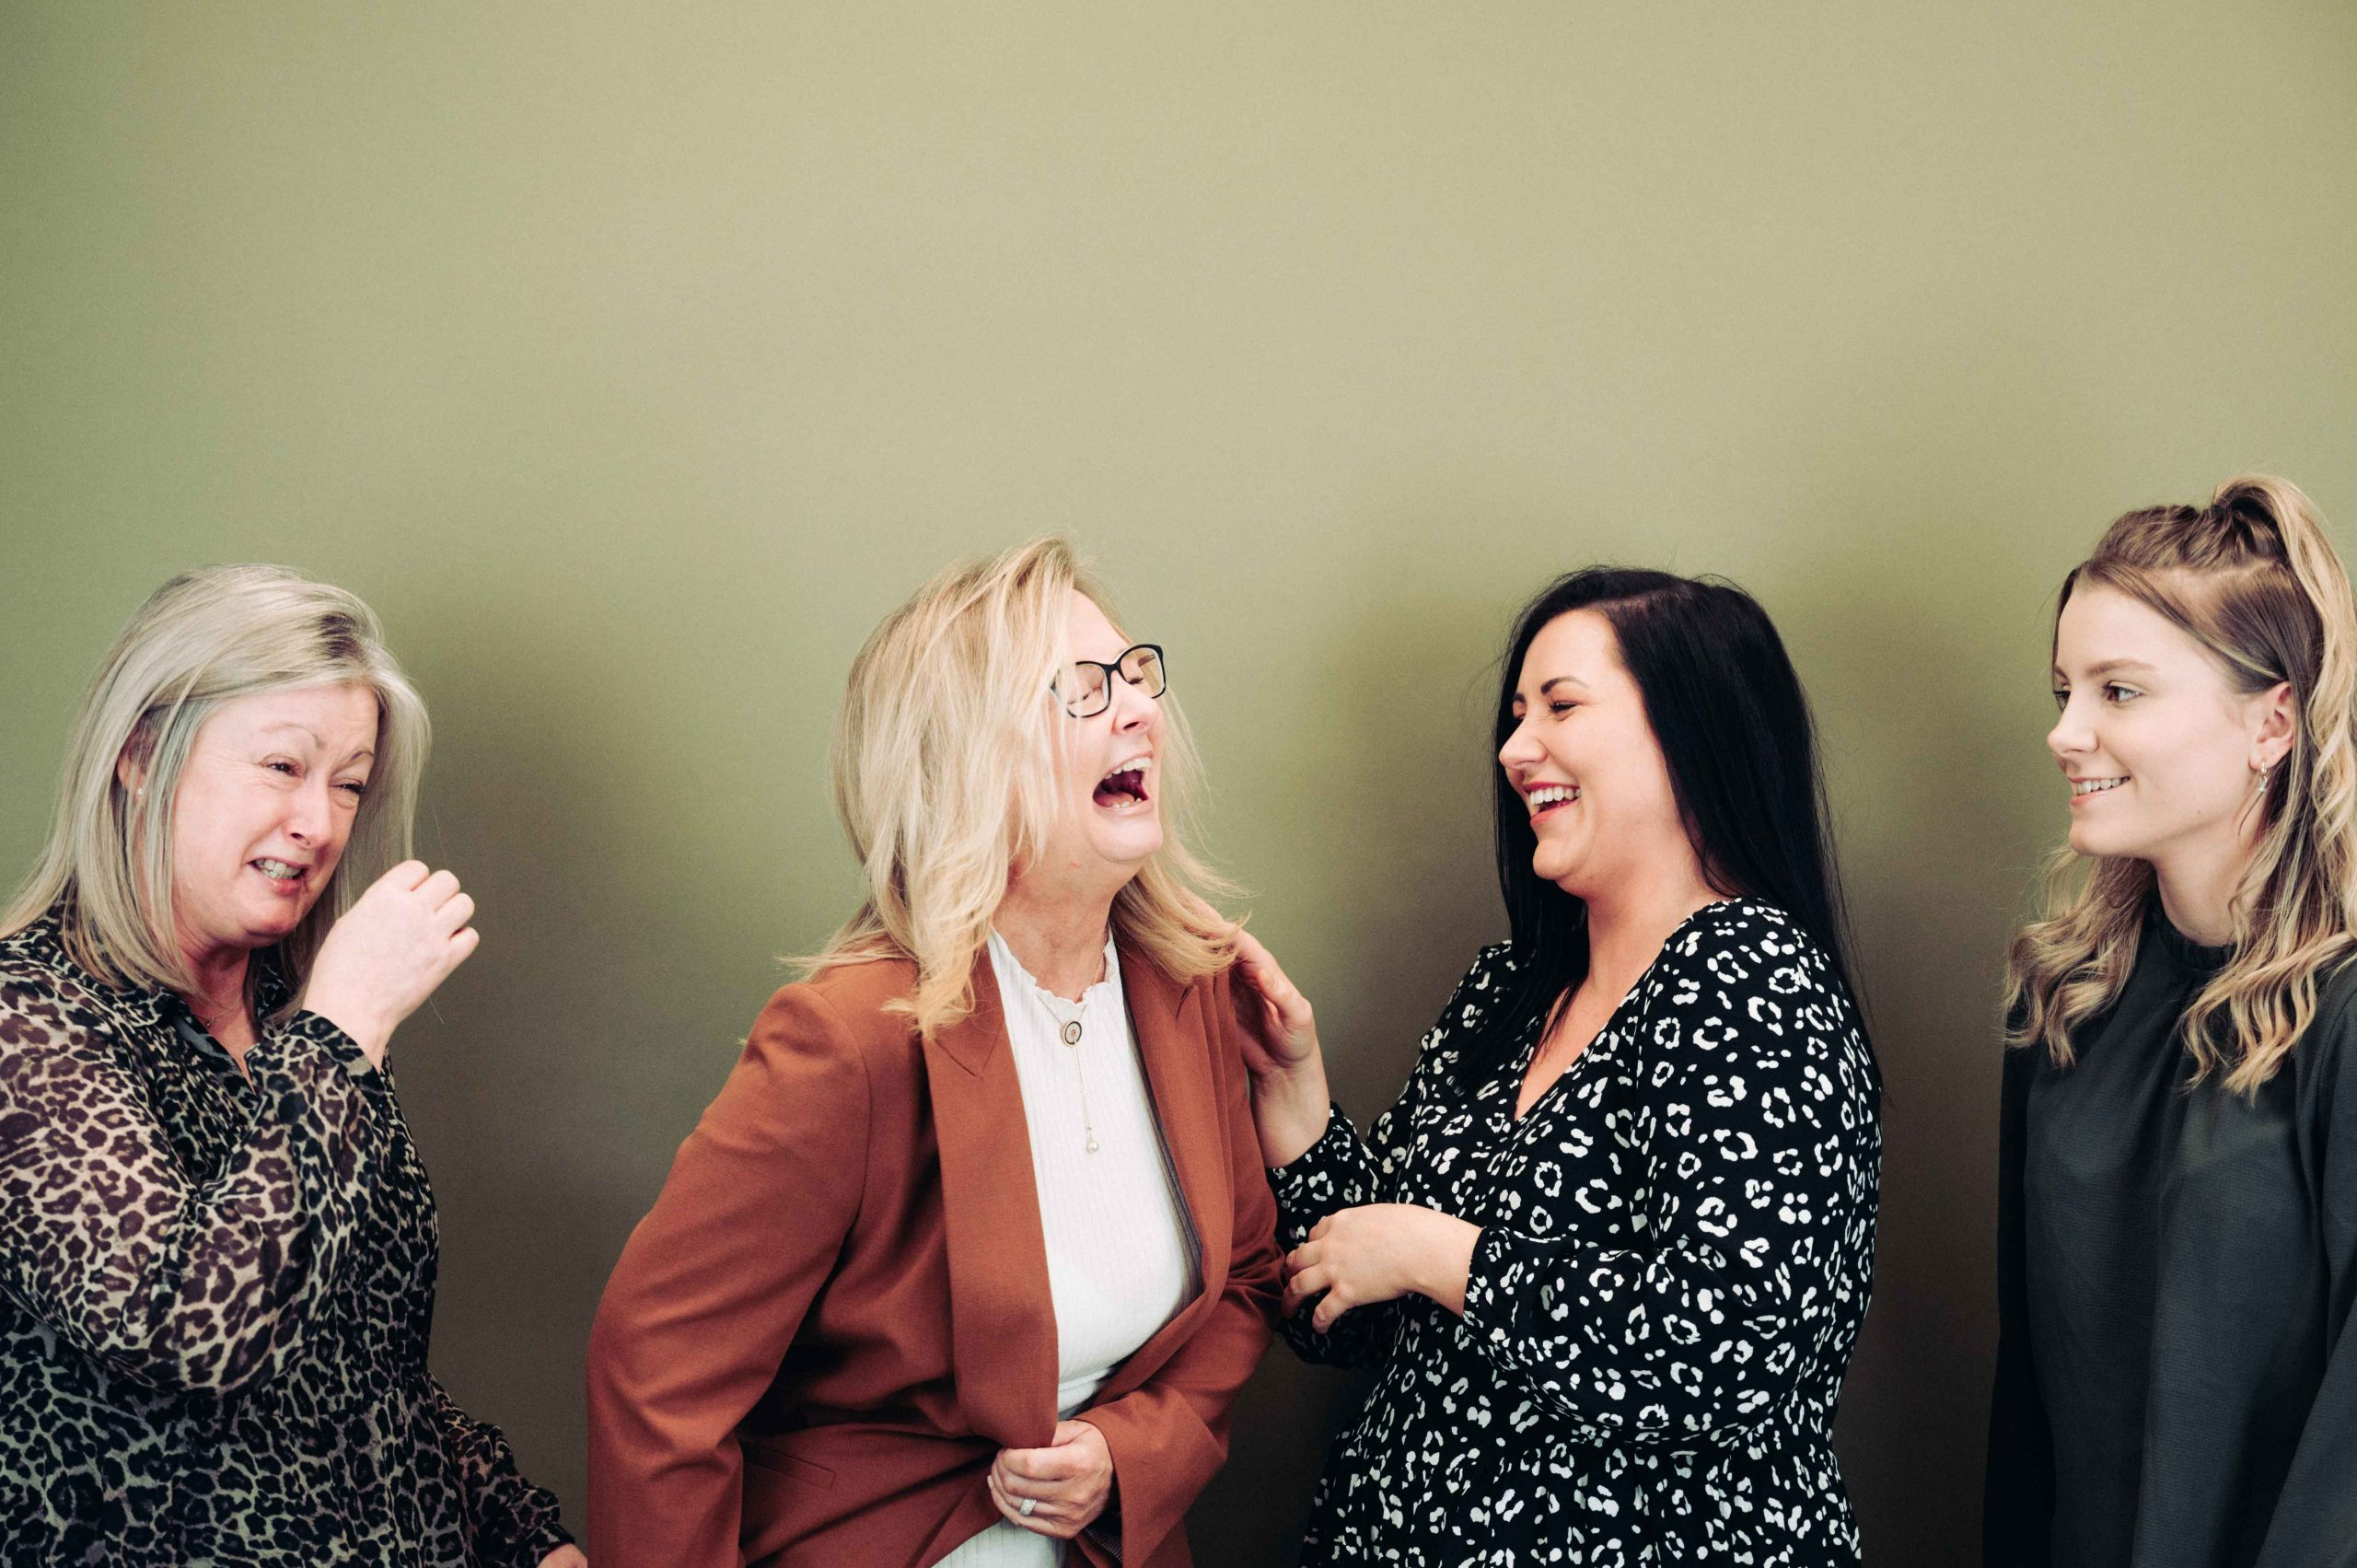 How we fit laughter and fun into our working day.